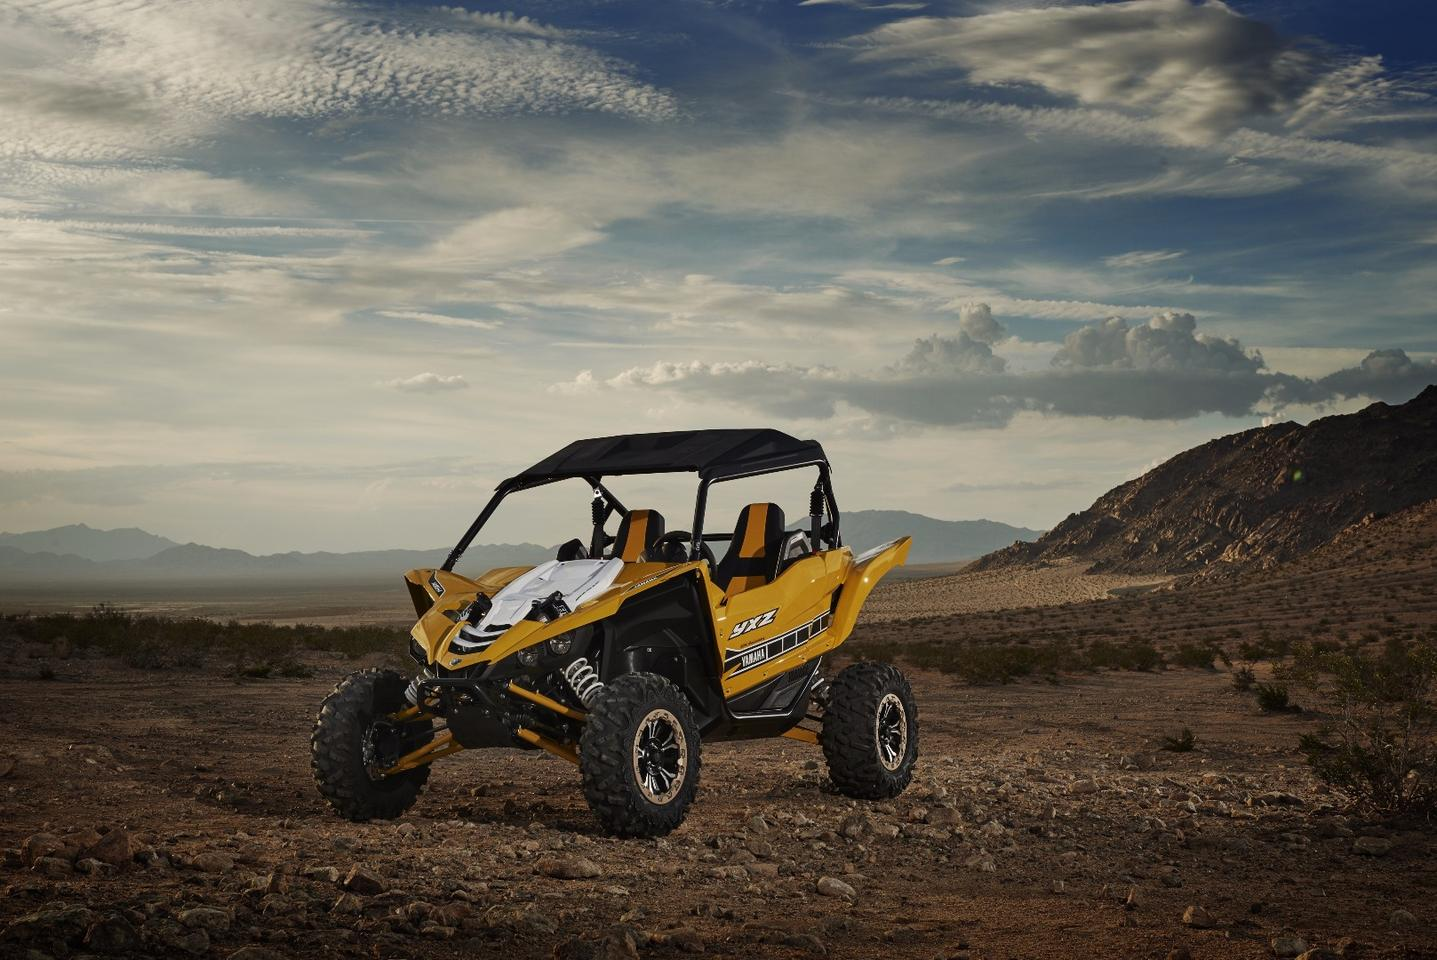 The Yamaha YXZ1000R aims to bring supersport performance to the Side-by-Side world